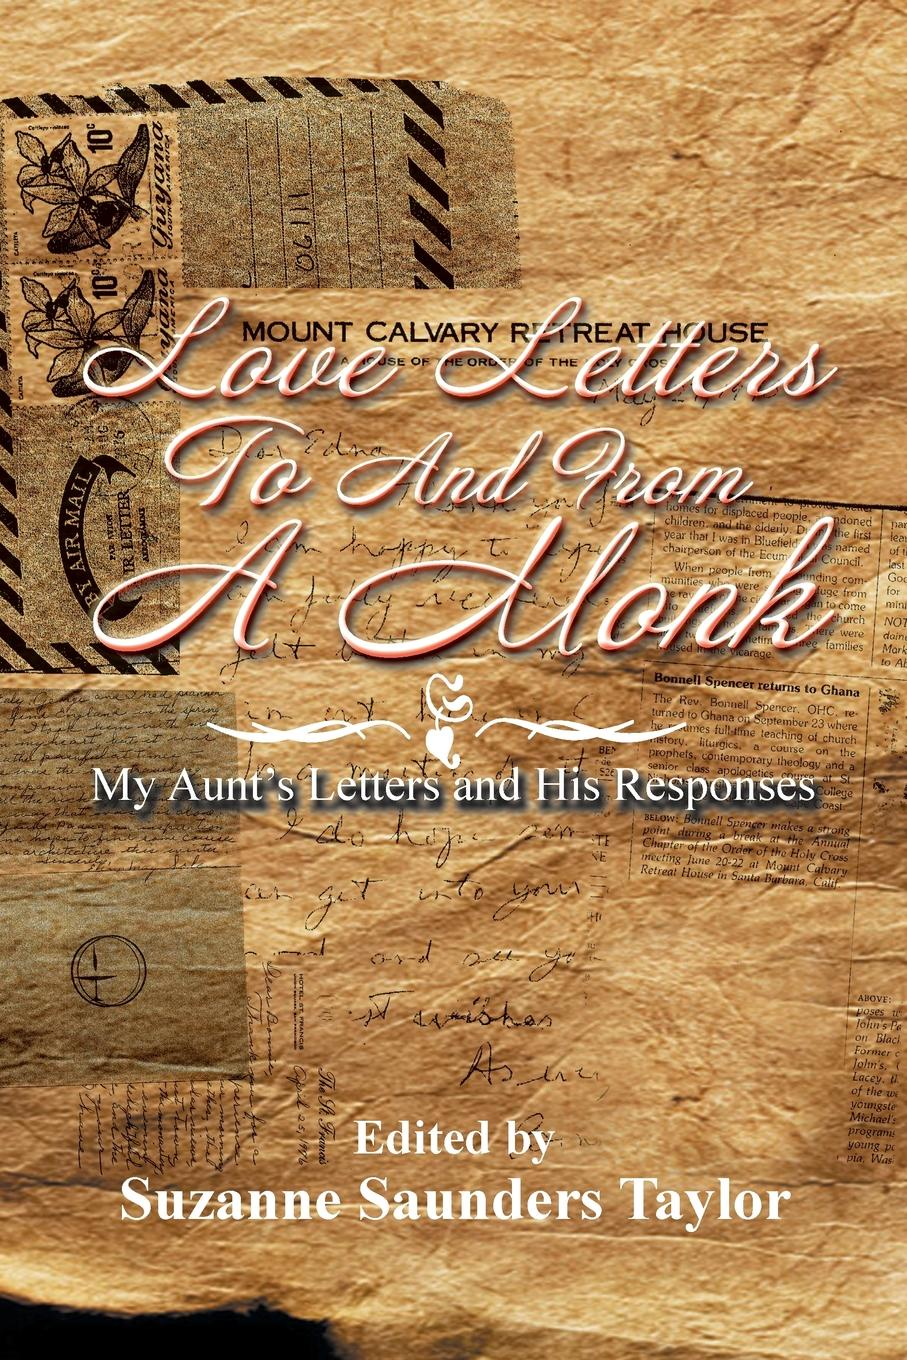 Suzanne Saunders Taylor Love Letters to and from a Monk. My Aunt's Letters and His Responses love letters 2018 04 10t19 00